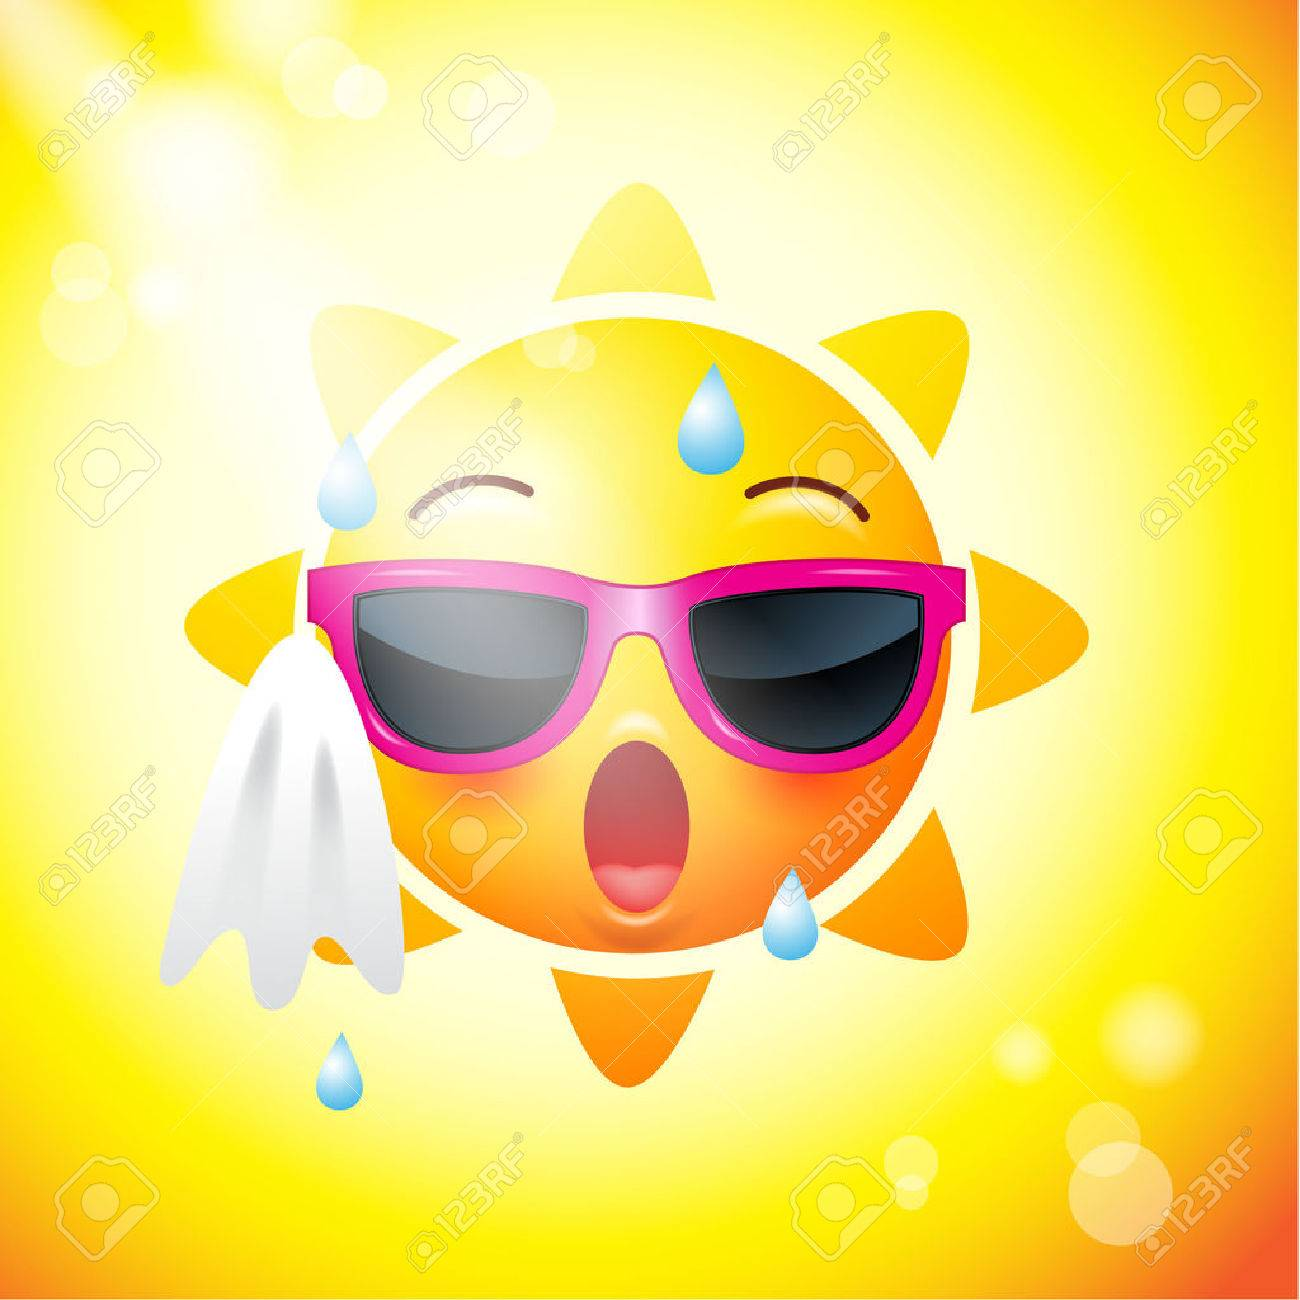 Sun face icons or yellow , funny faces in realistic   emojis